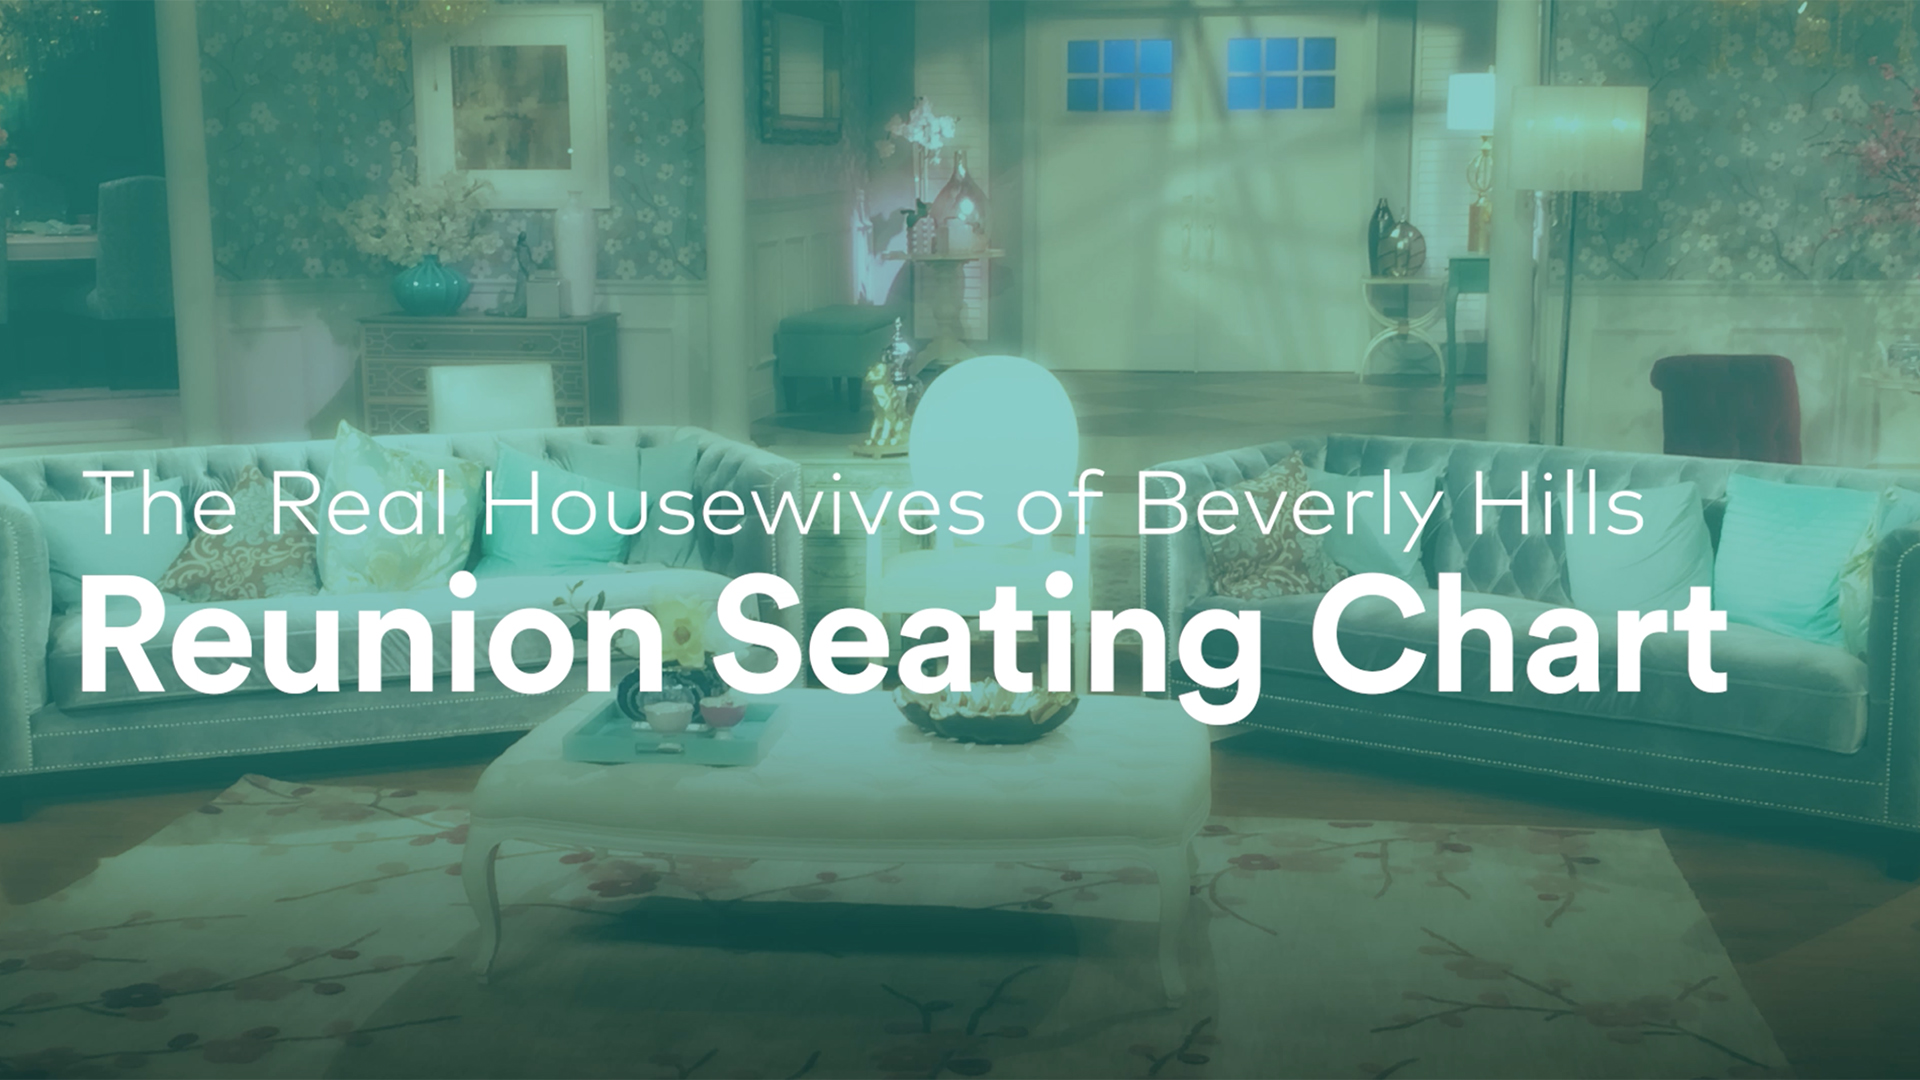 Real housewives of beverly hills season 7 reunion seating chart real housewives of beverly hills season 7 reunion seating chart photo road to reunion the real housewives of beverly hills nvjuhfo Gallery